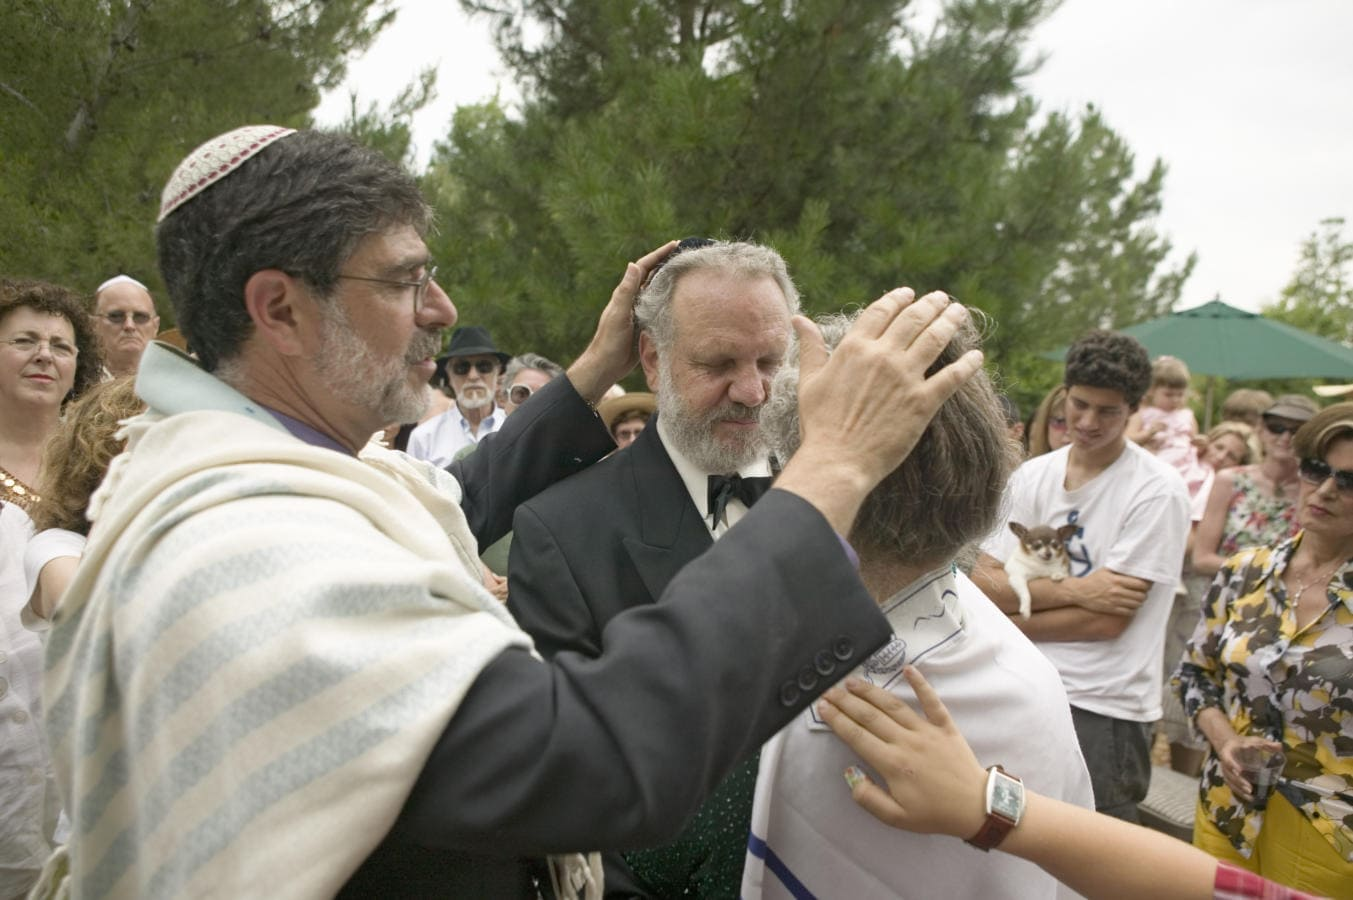 Jewish Wedding Traditions THE SEVEN BLESSINGS | weddings in Spain www.marbella-wedding.com